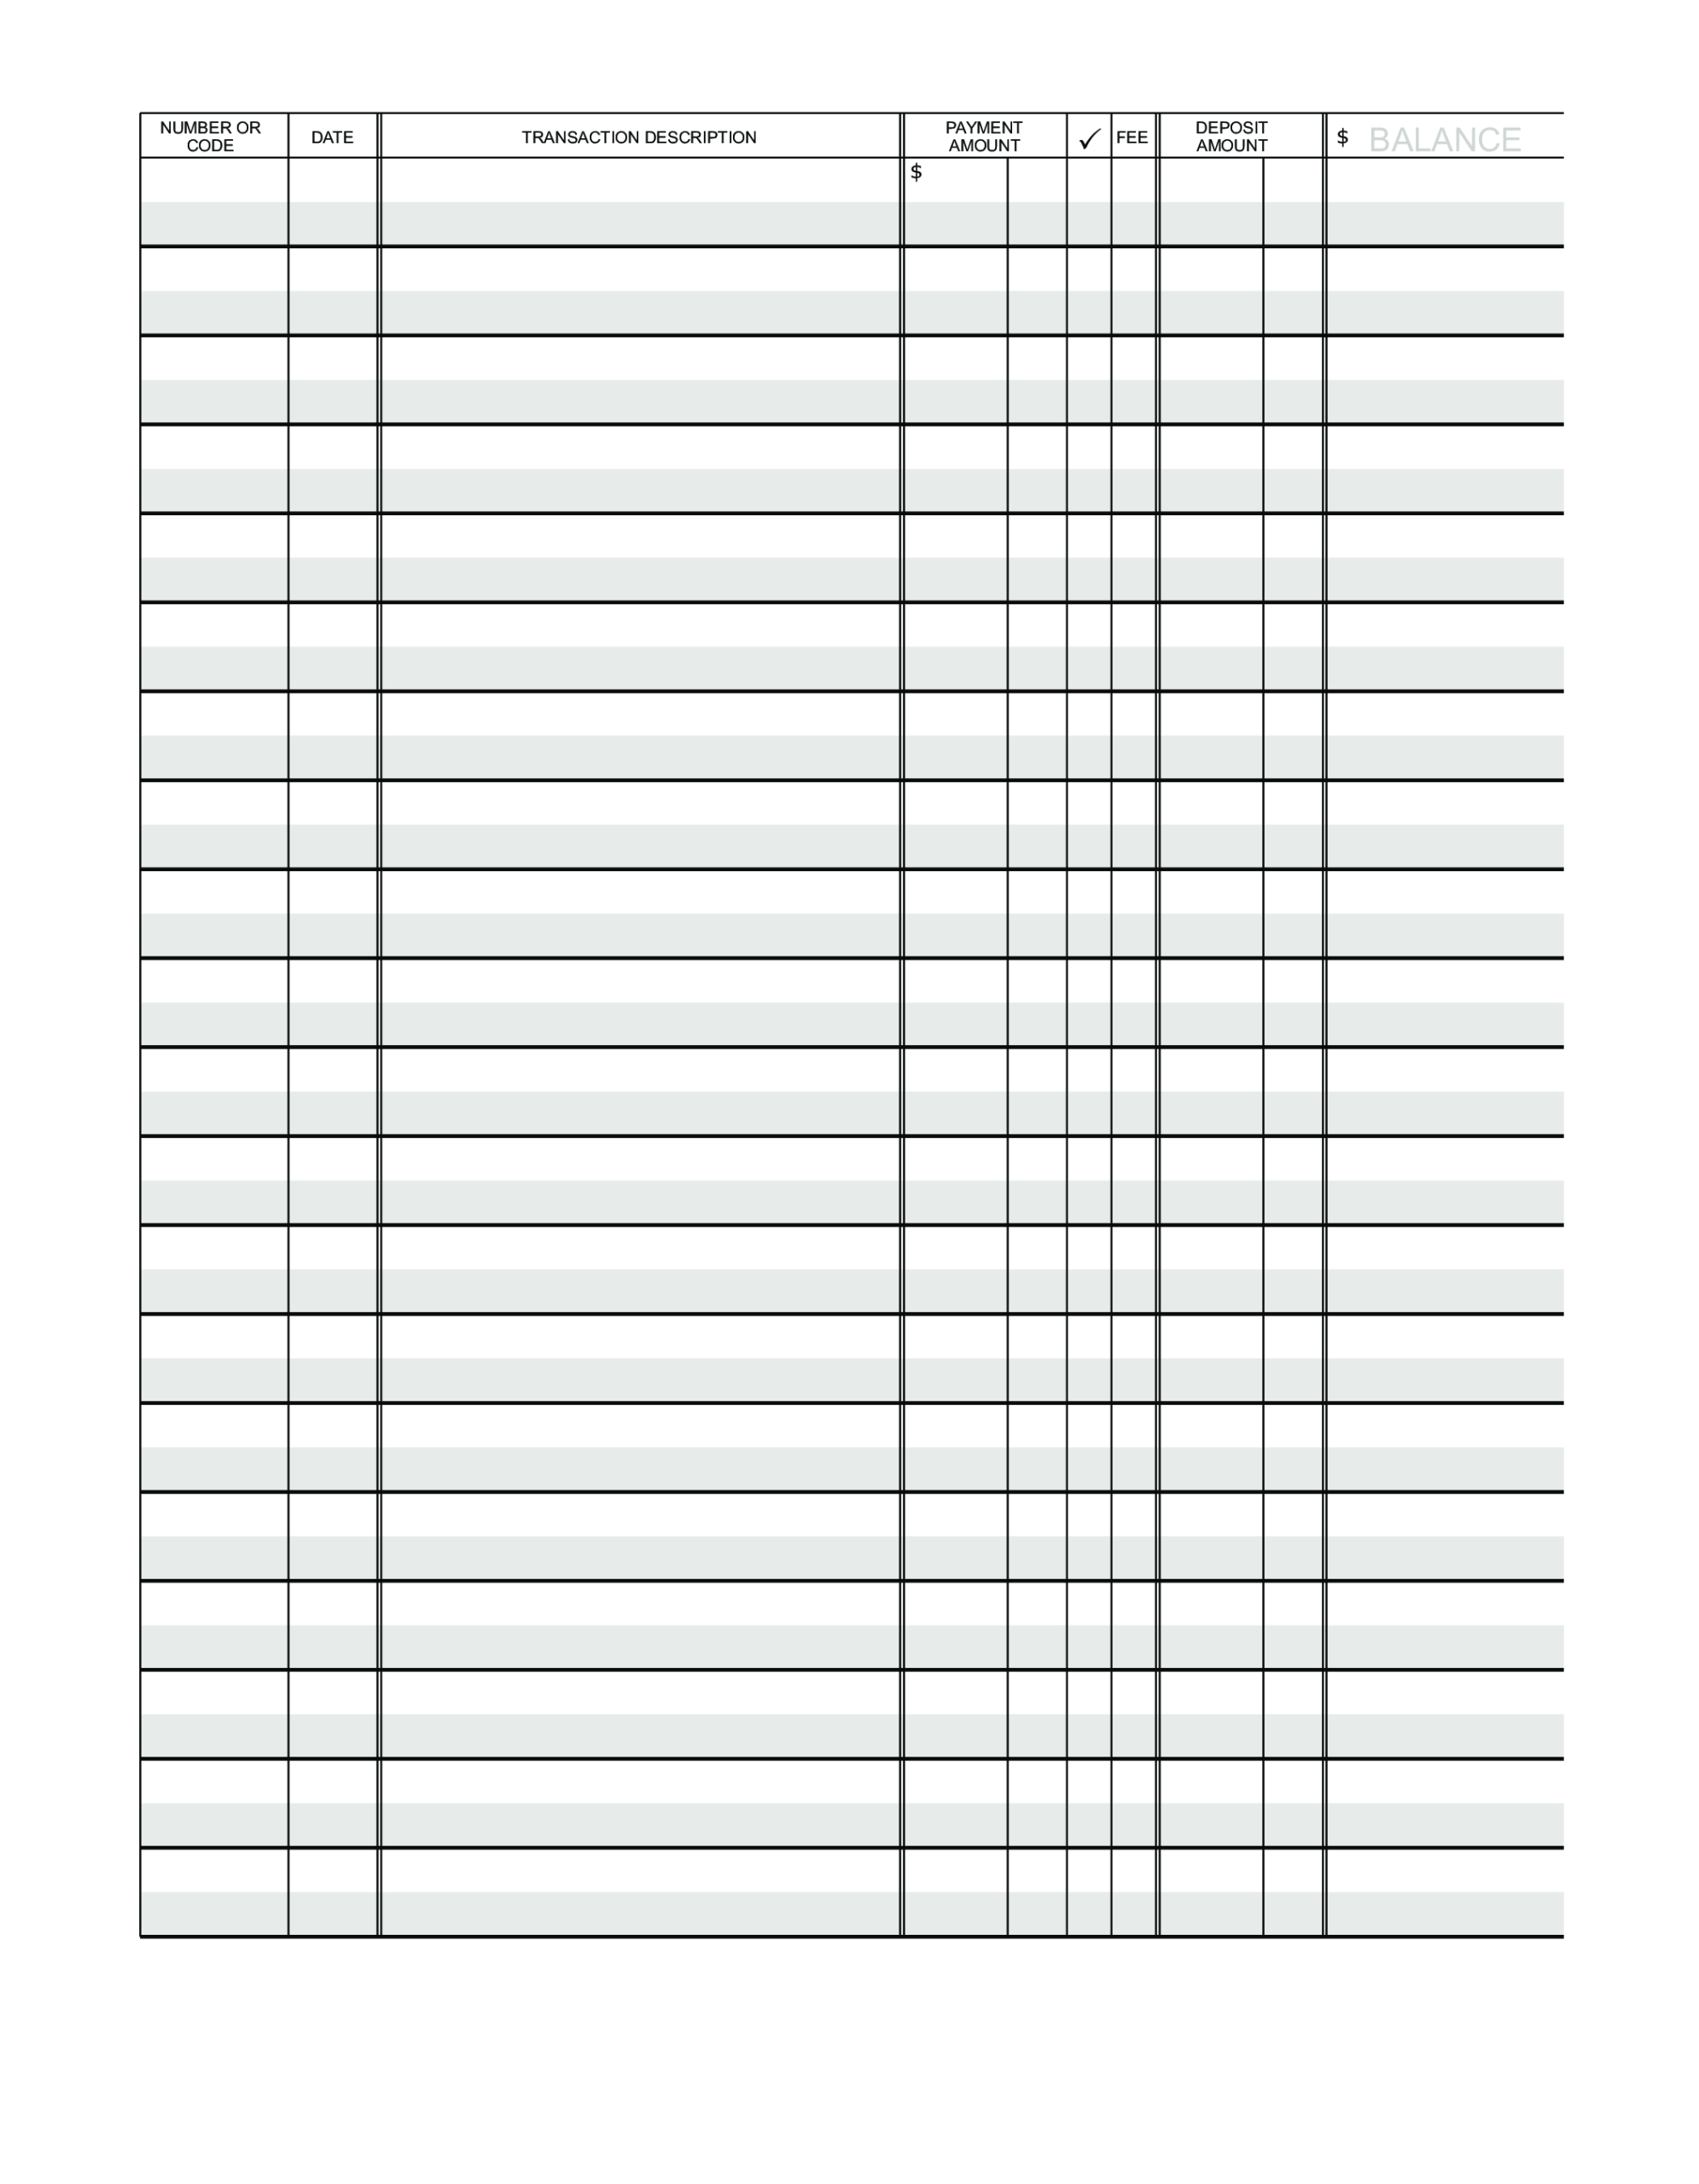 Blank Ledger Paper | Templates At Allbusinesstemplates Intended For Blank Ledger Template